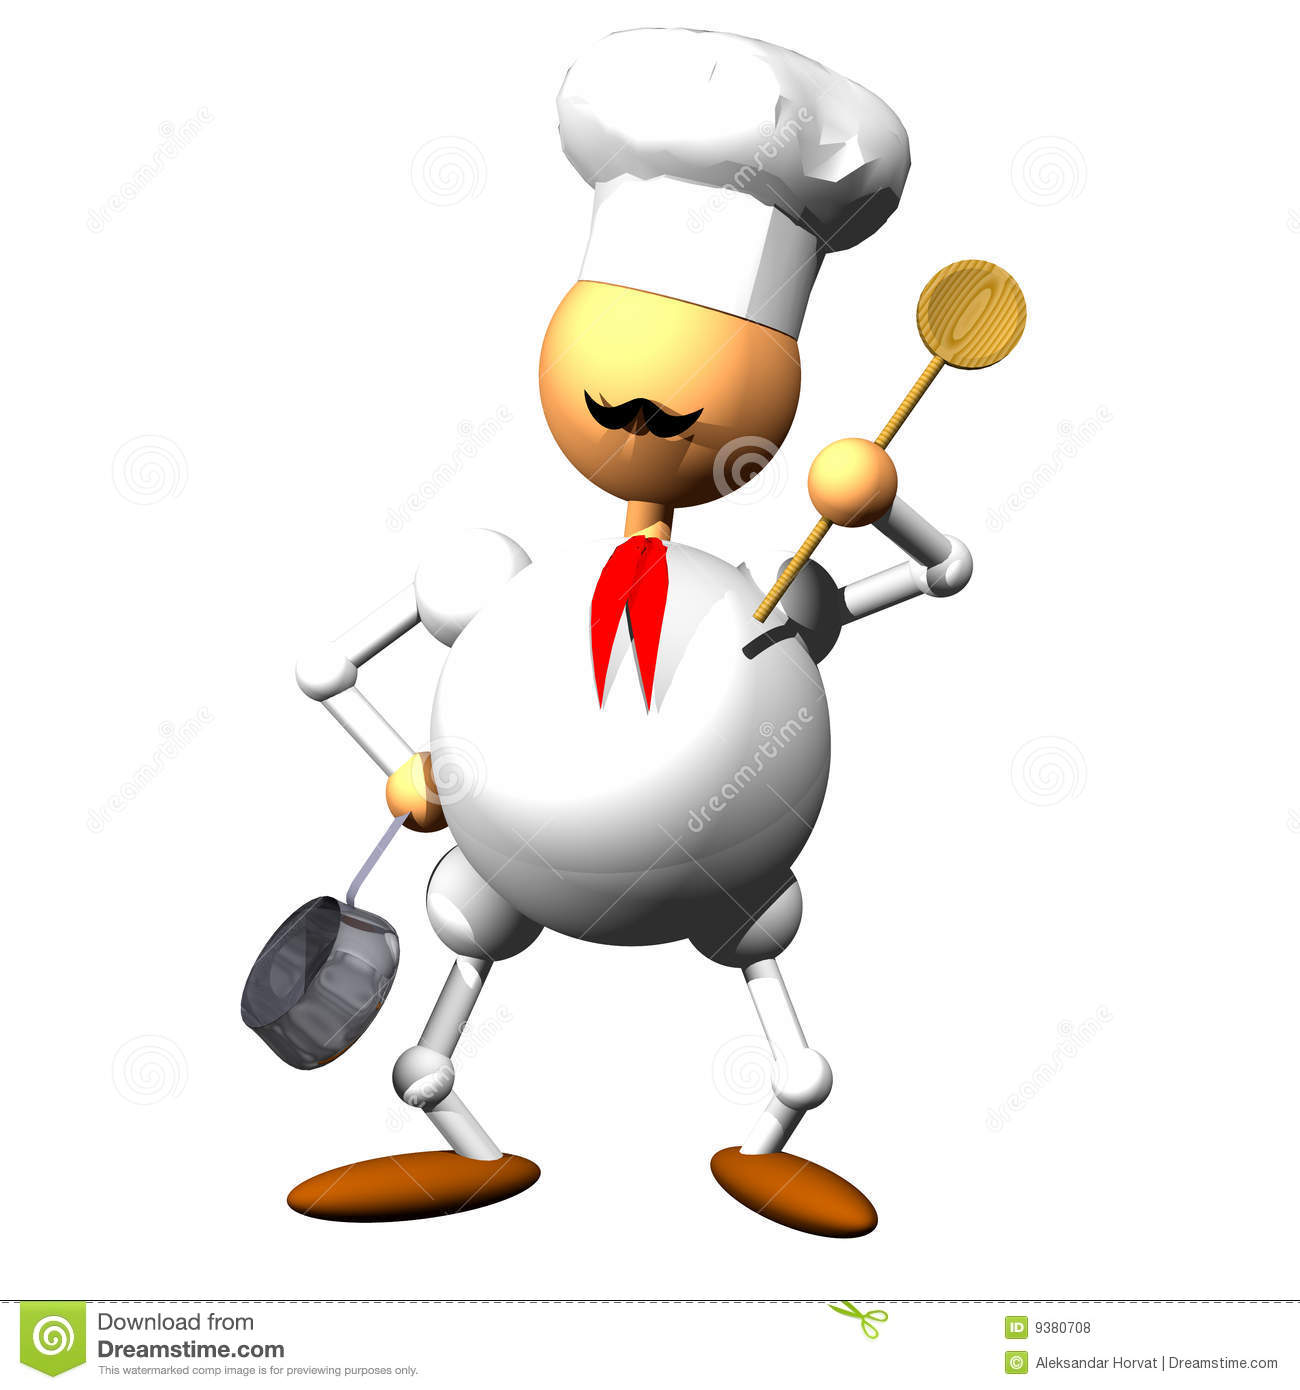 Free stock clipart clip library Chef Clipart Royalty Free Stock Photos - Image: 9380708 clip library